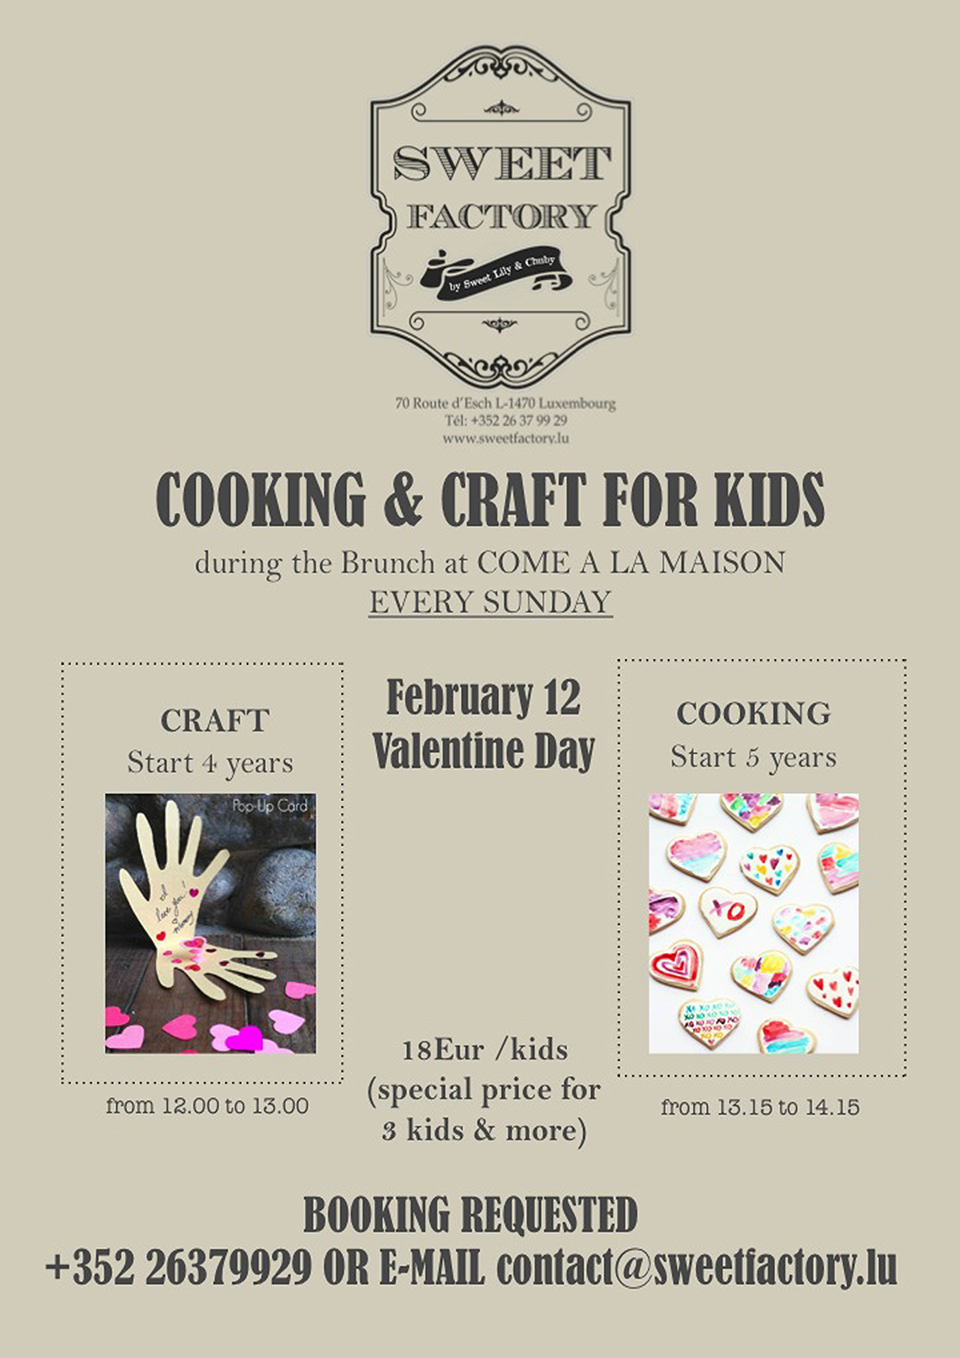 COOKING & CRAFT FOR KIDS